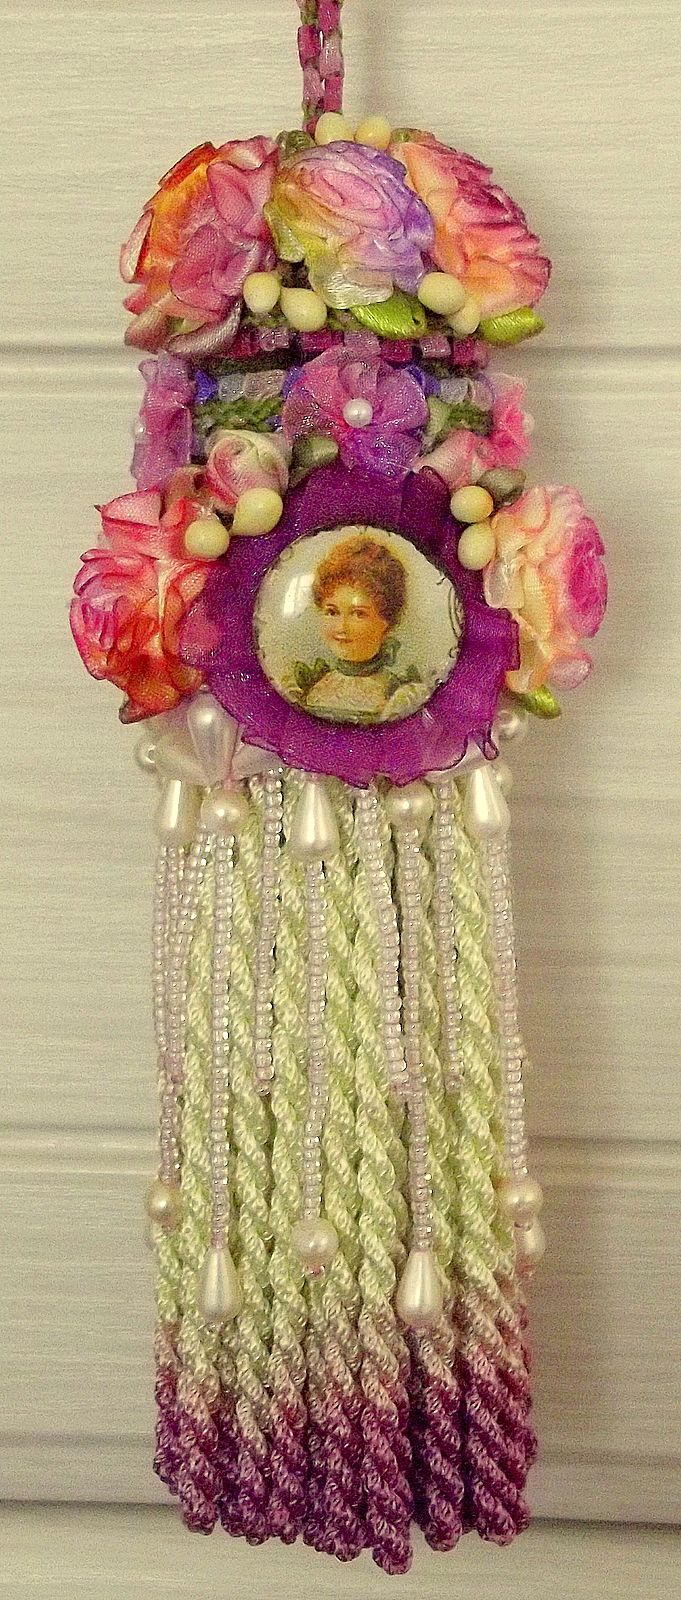 Another tassel with hand-dyed roses.